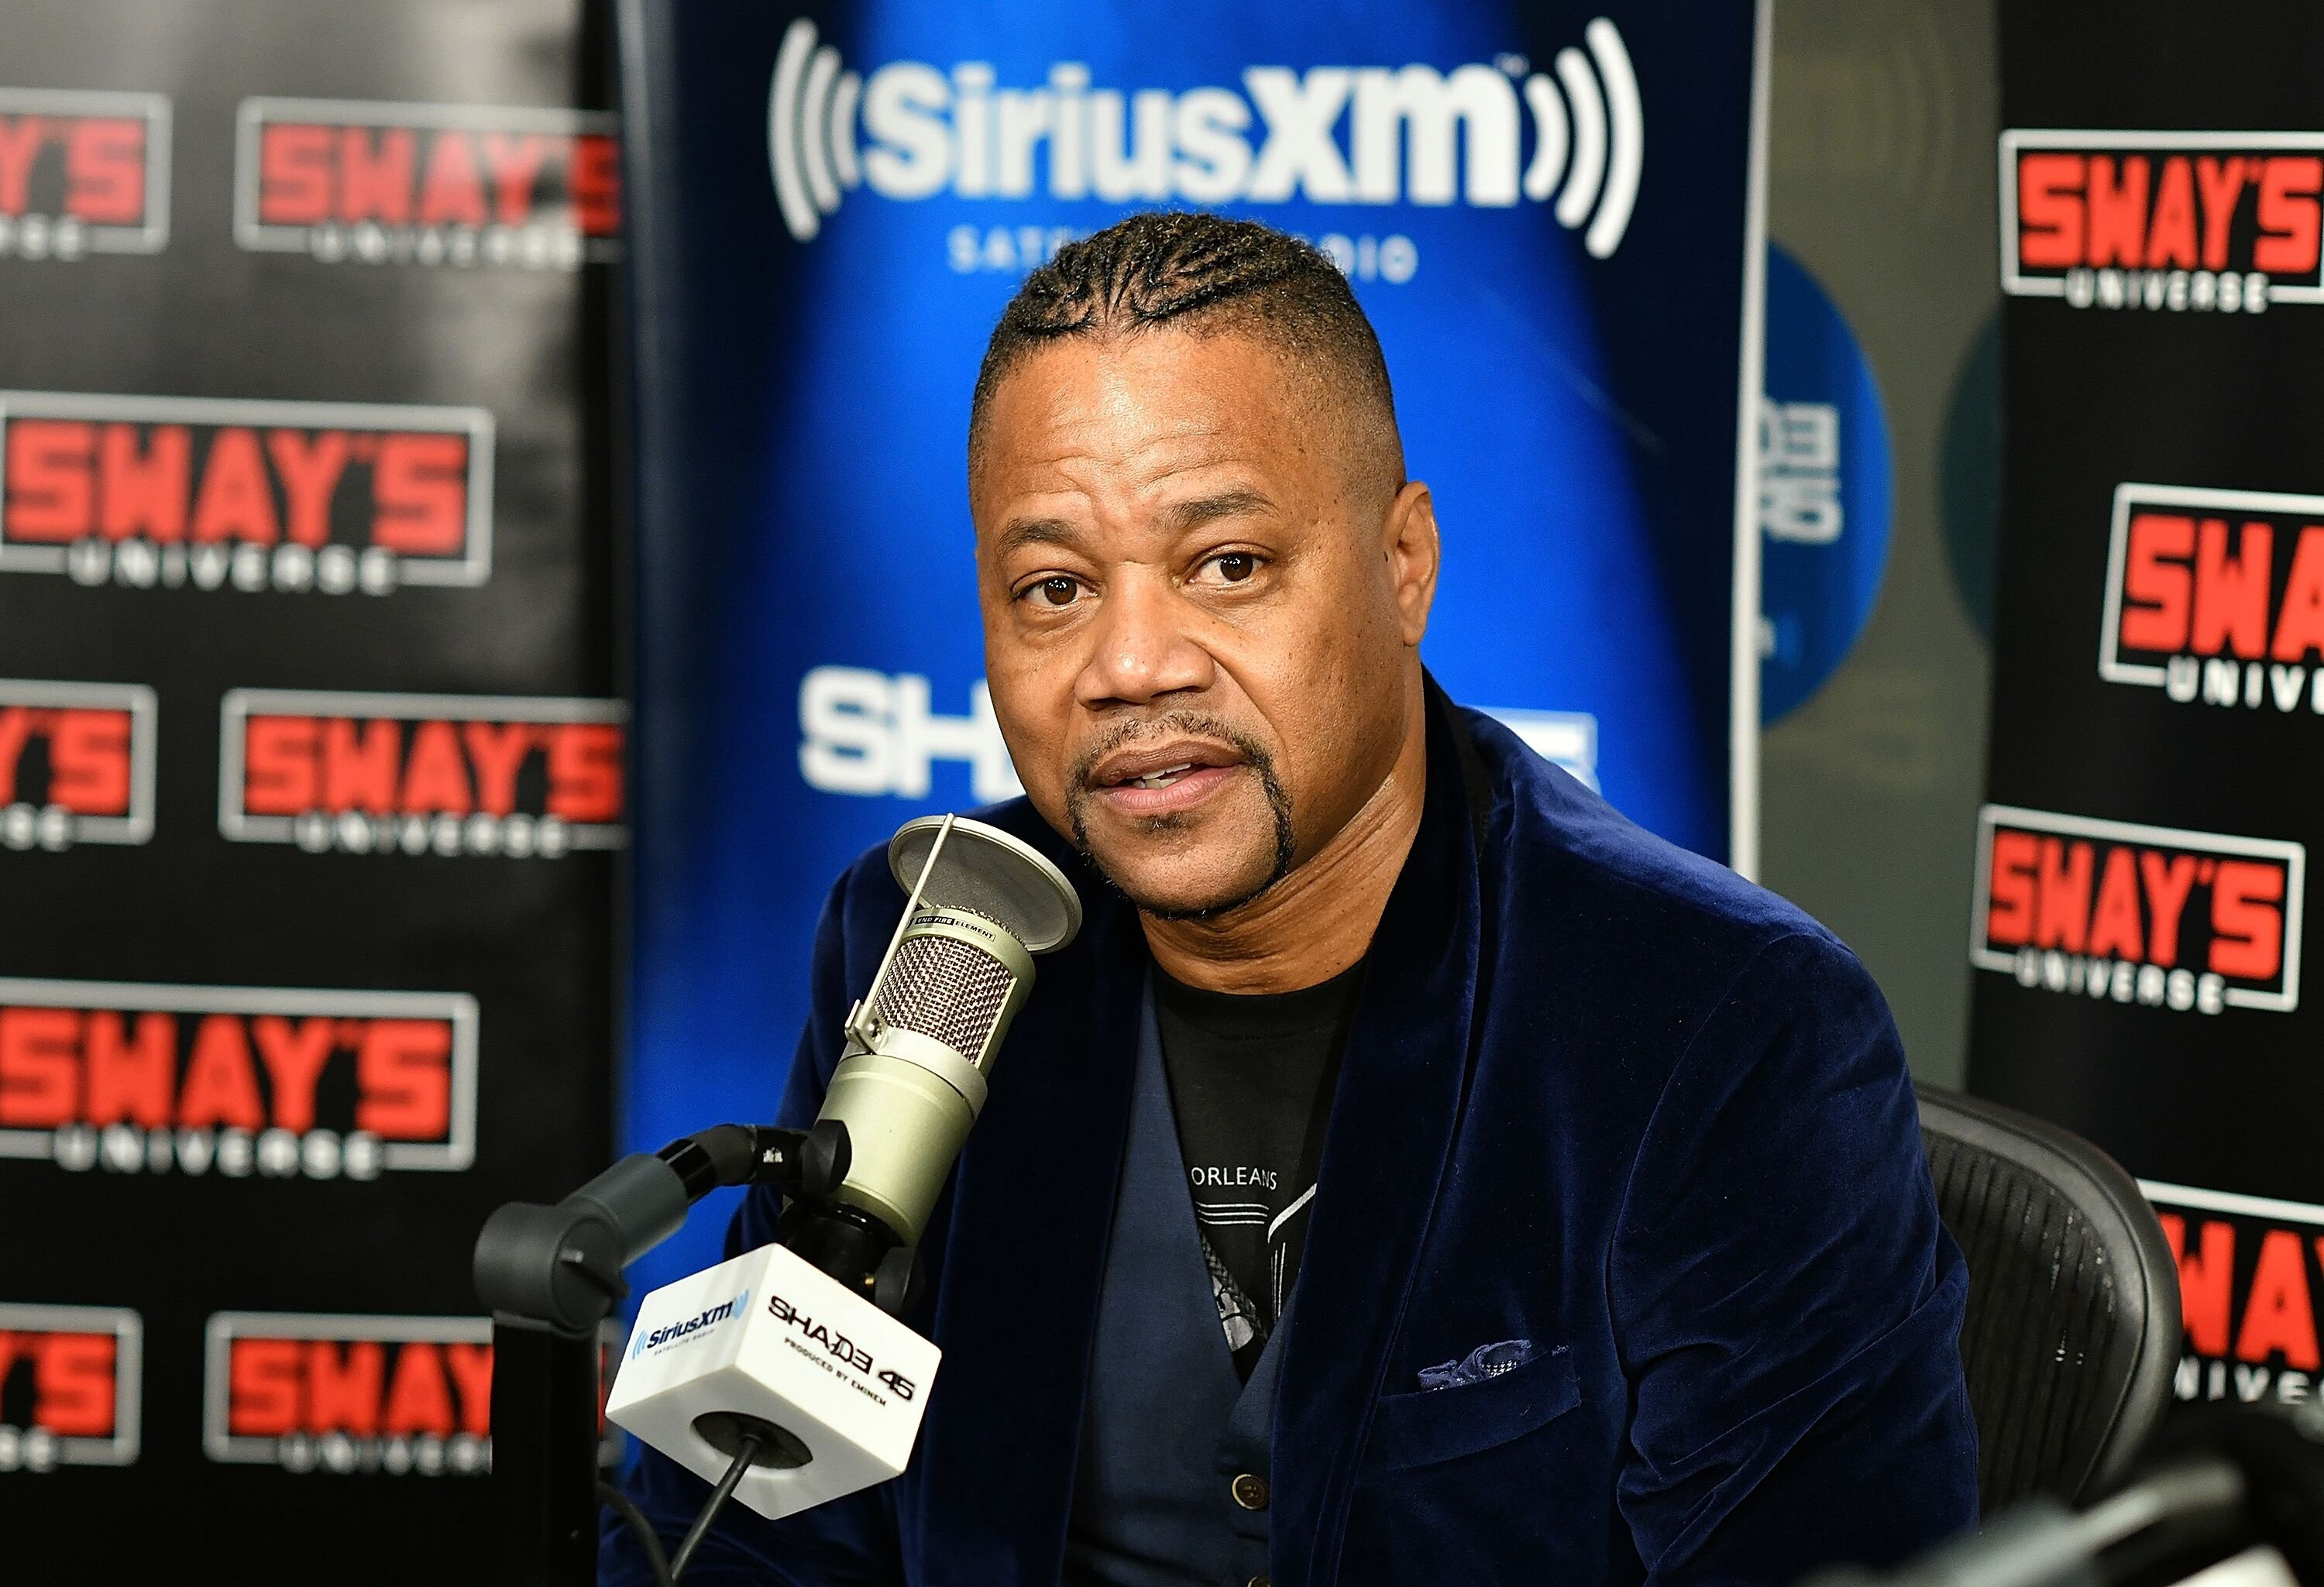 Cuba Gooding Jr being interviewed by Sirius XM radio/ Source: Getty Images